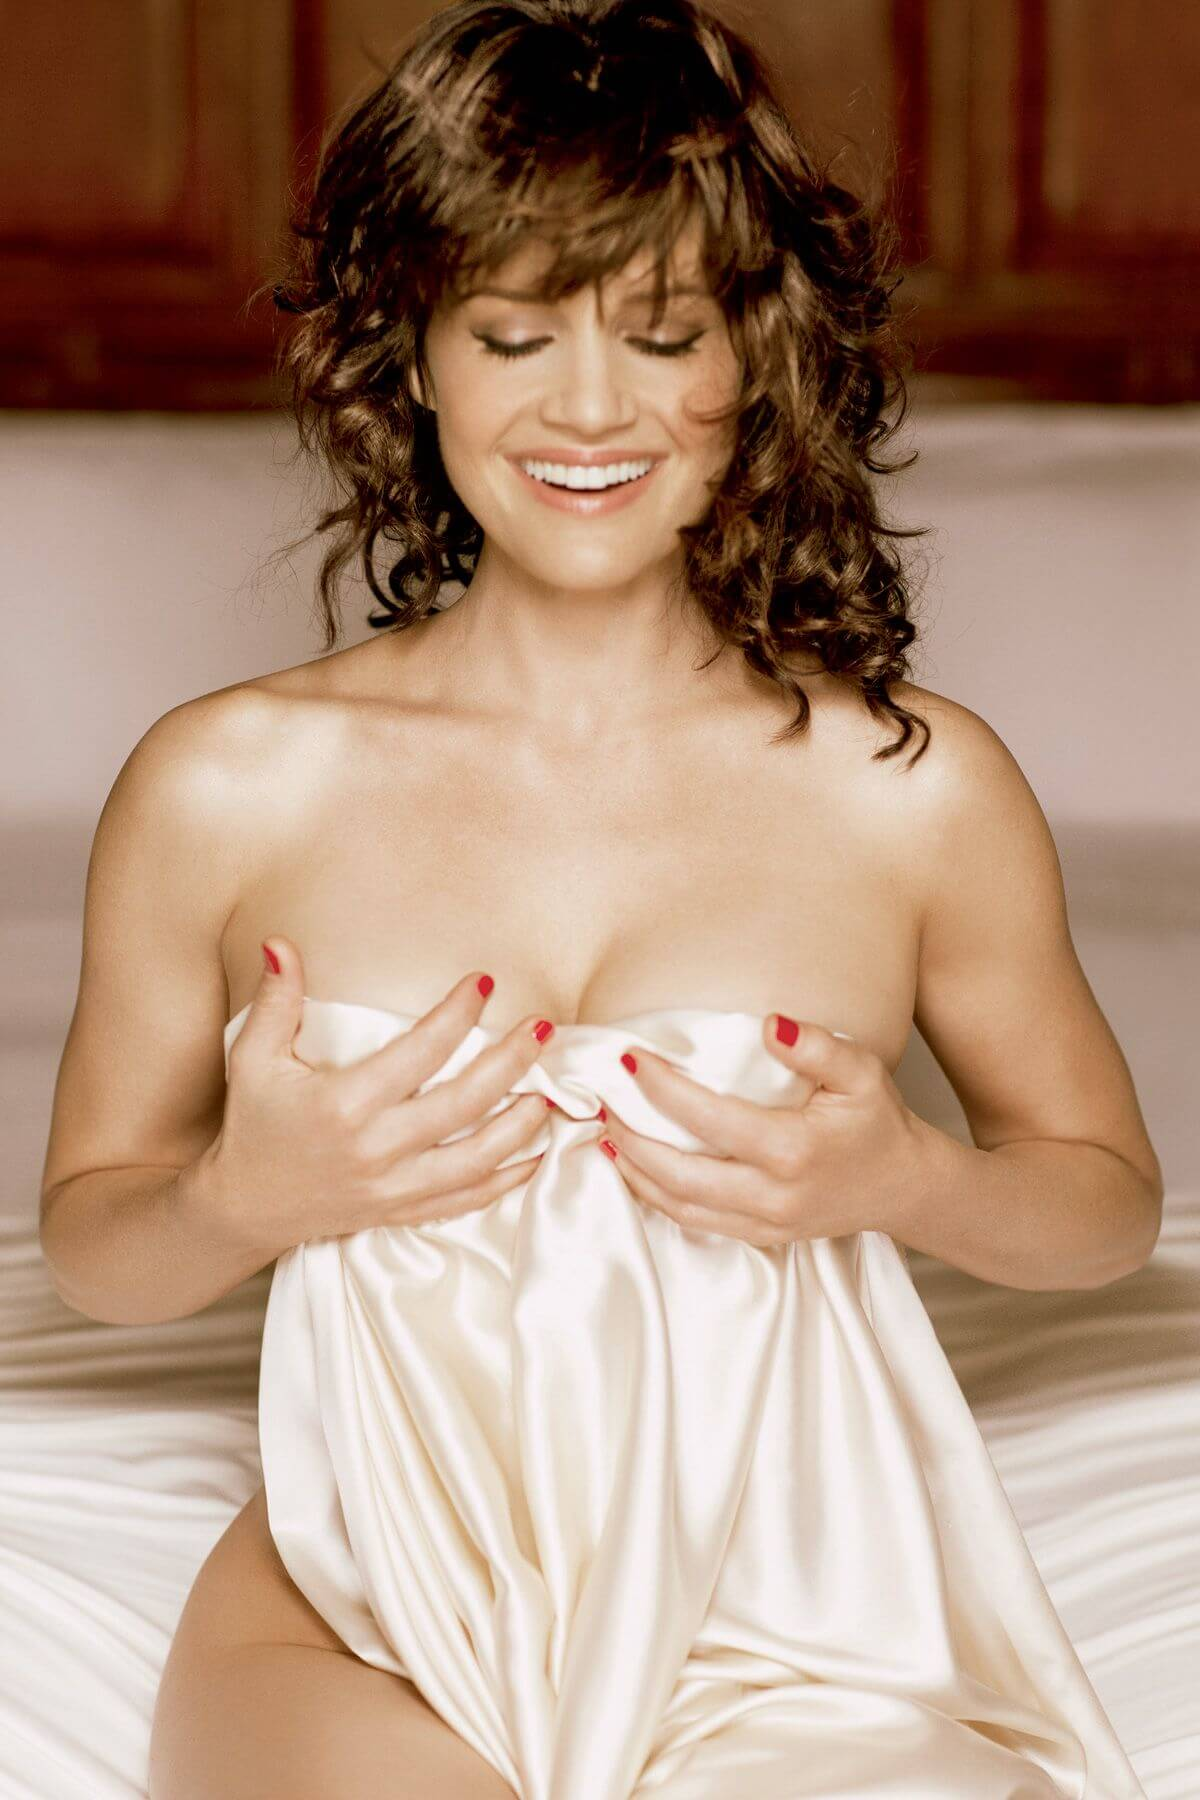 49 Hot Pictures Of Carla Gugino Will Make You Drool For Her-5058